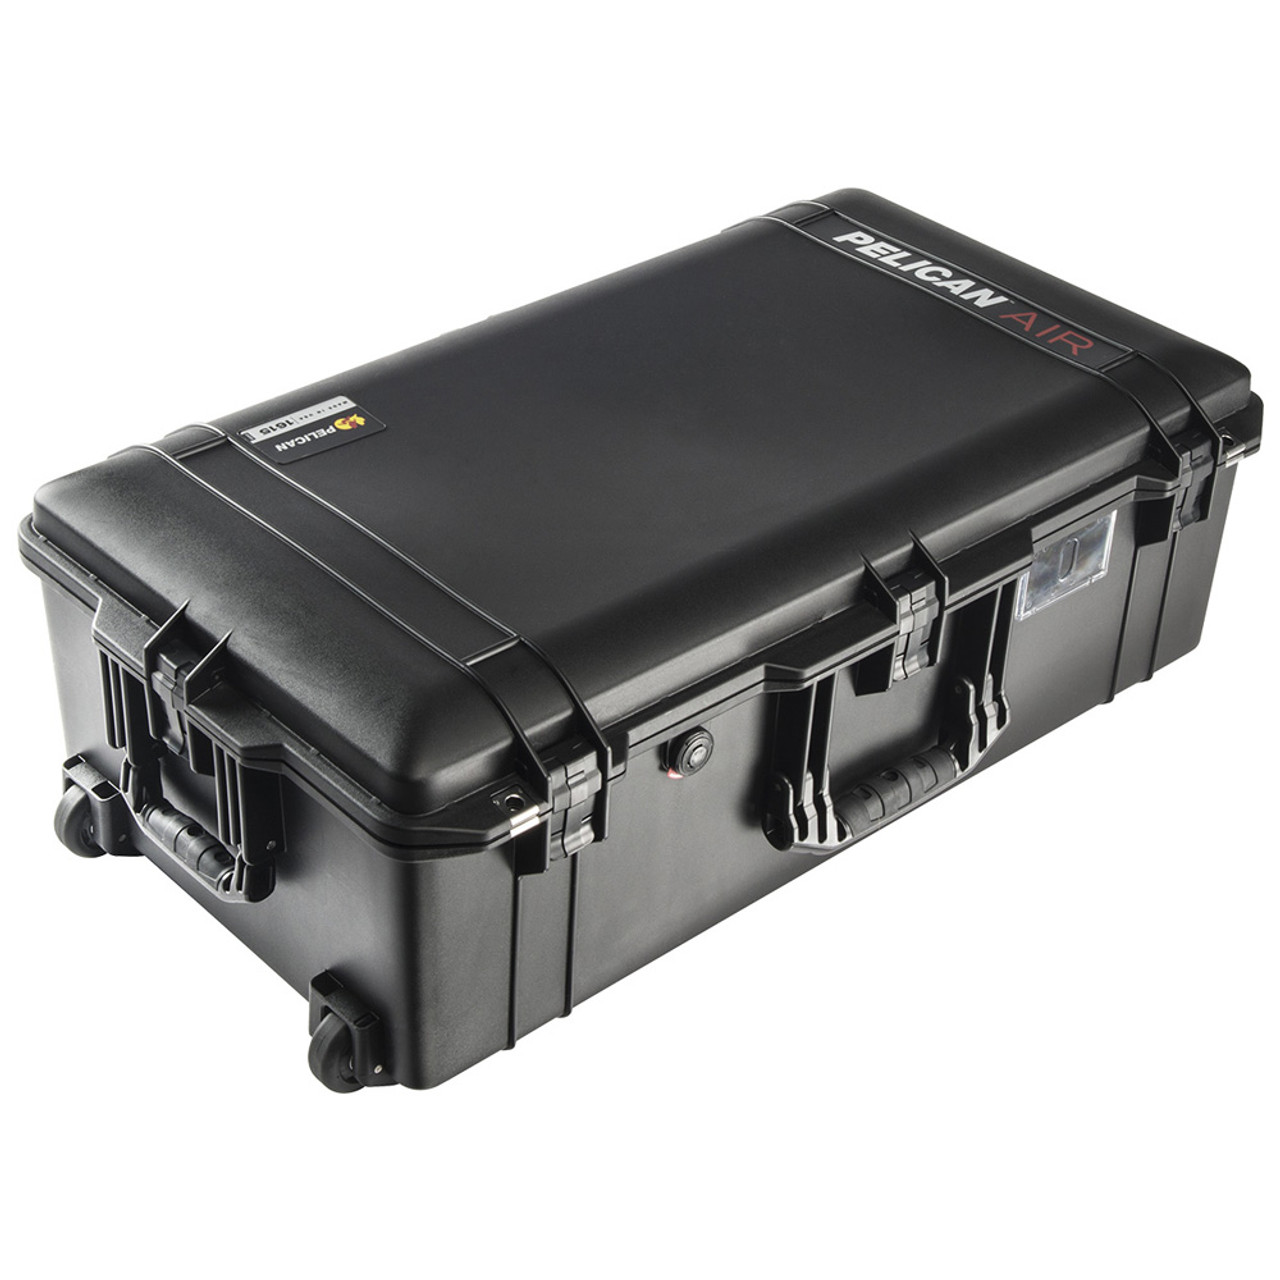 Silver /& Red Pelican 1615 Air case No Foam With wheels.